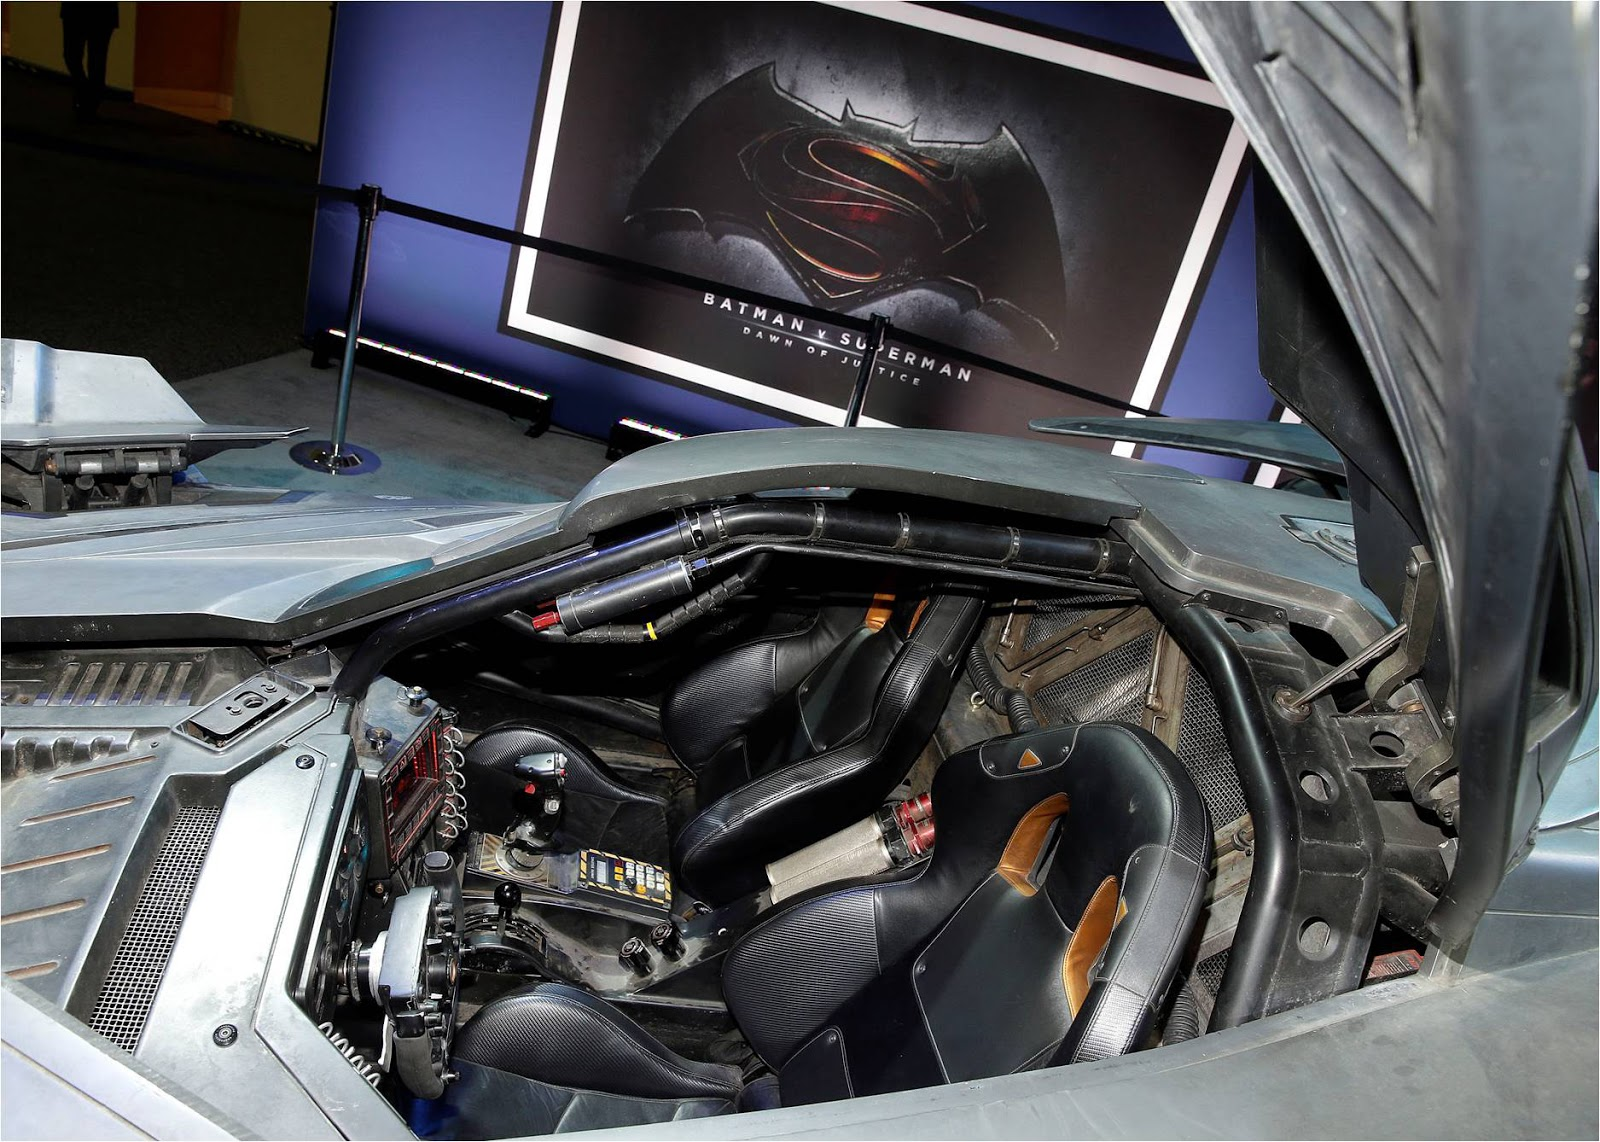 PHOTO GALLERY: The New Batmobile In Detroit